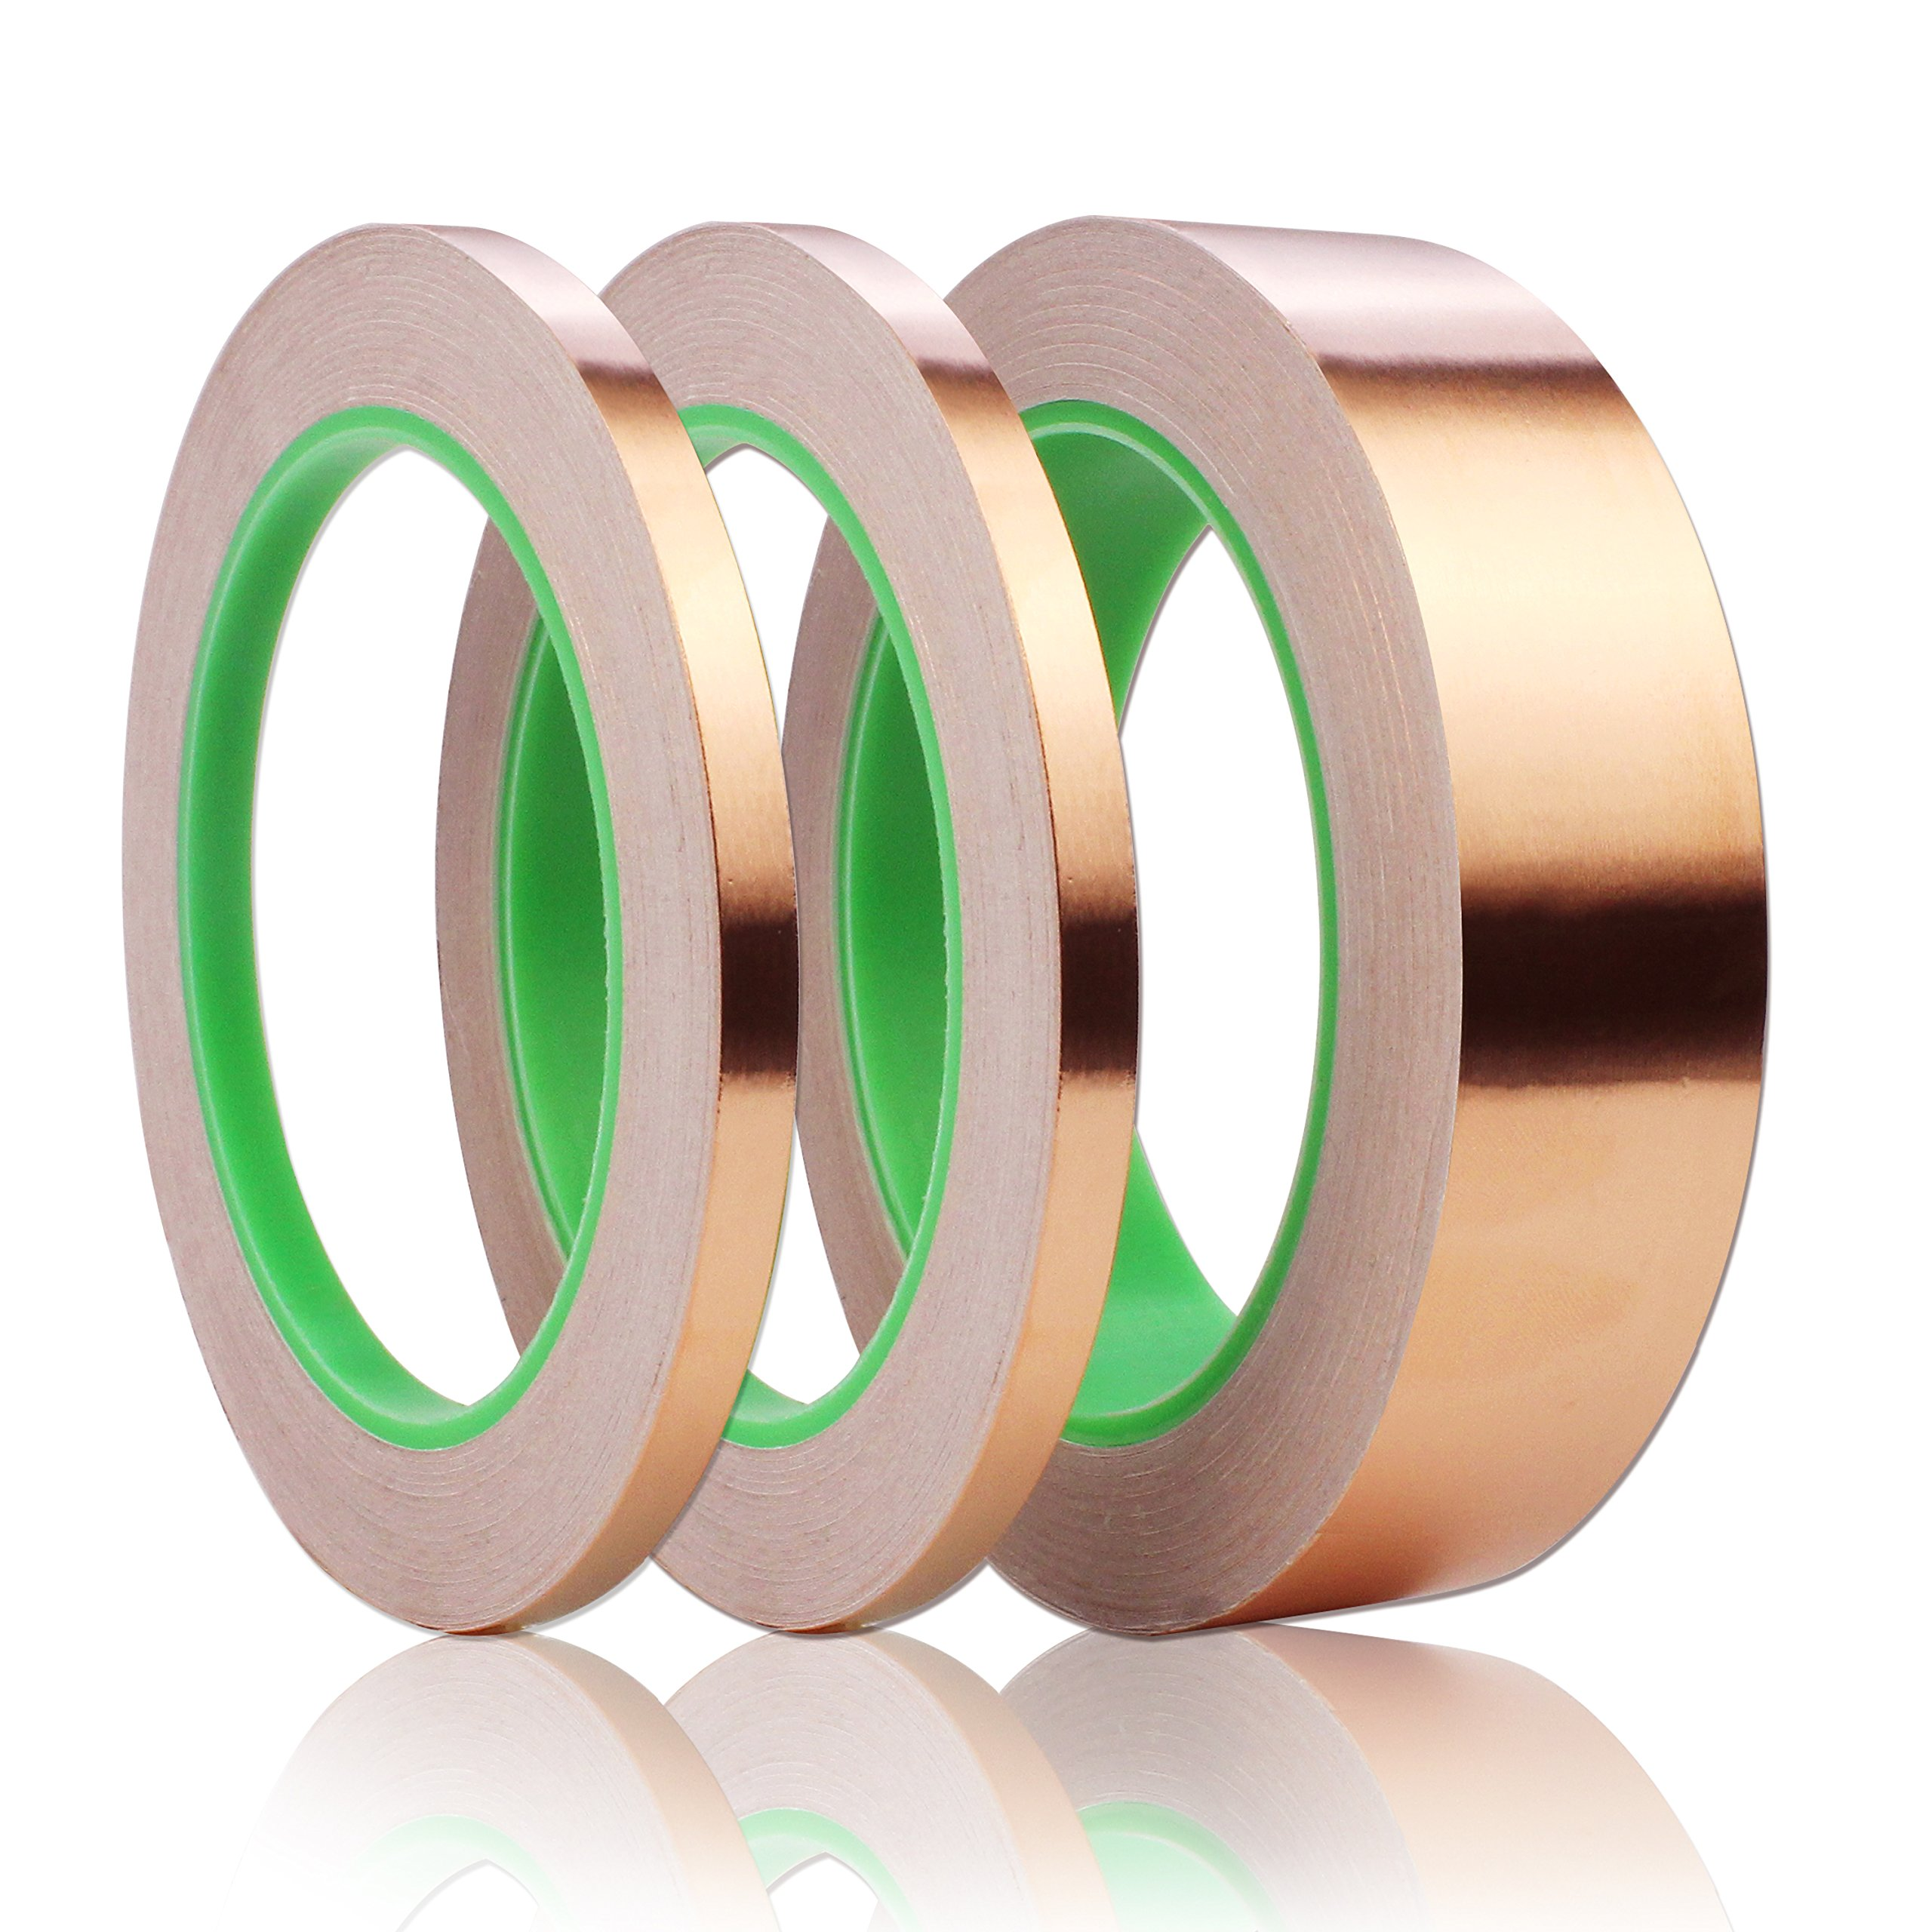 JPSOR Copper Foil Tape with Double-Sided Conductive Adhesive(2 Sizes) for Guitar & EMI Shielding, Paper Circuits, Slug Repellent, Crafts, Electrical Repairs, Grounding by JPSOR